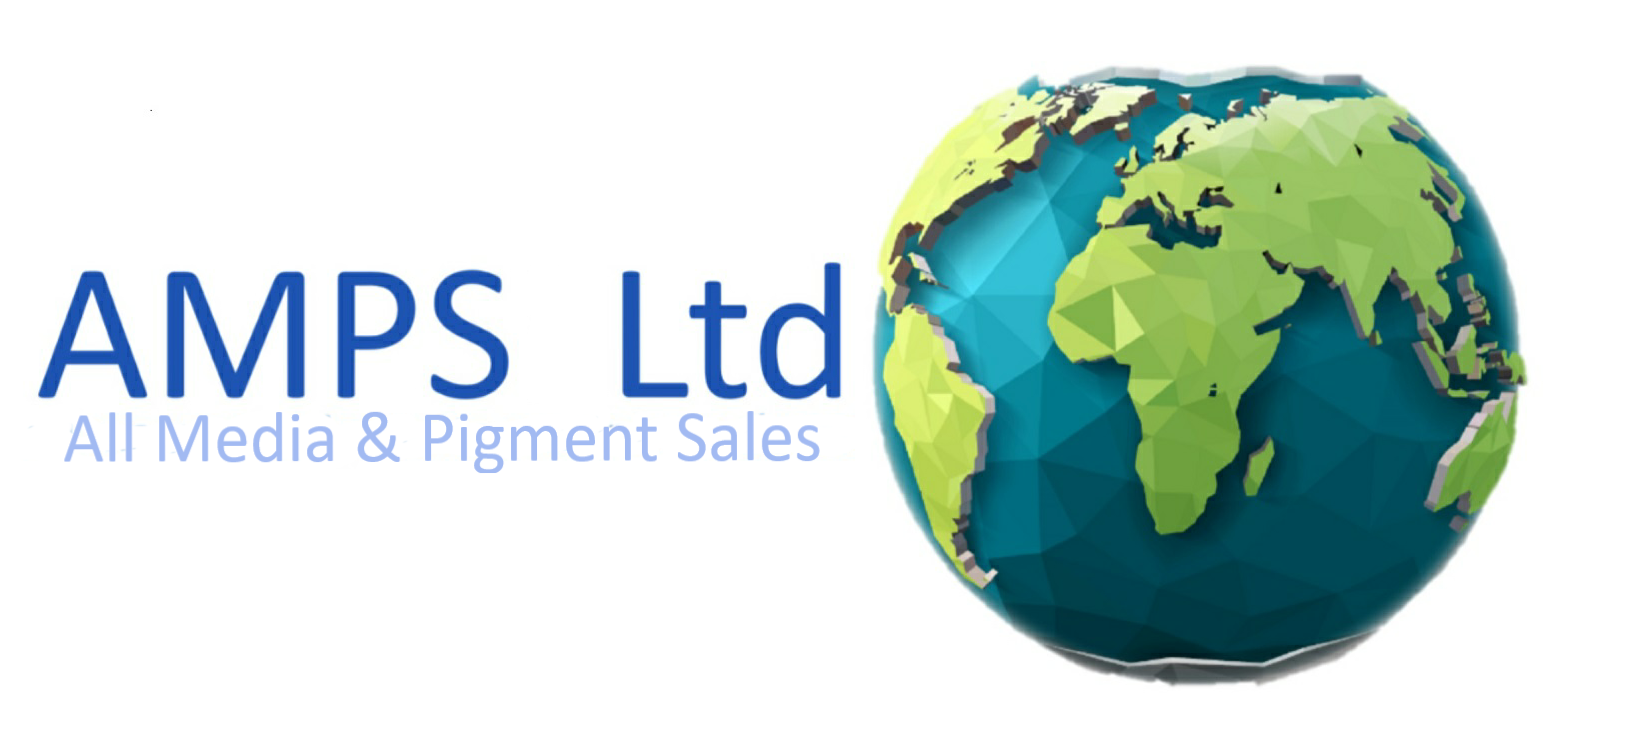 AMPS Ltd